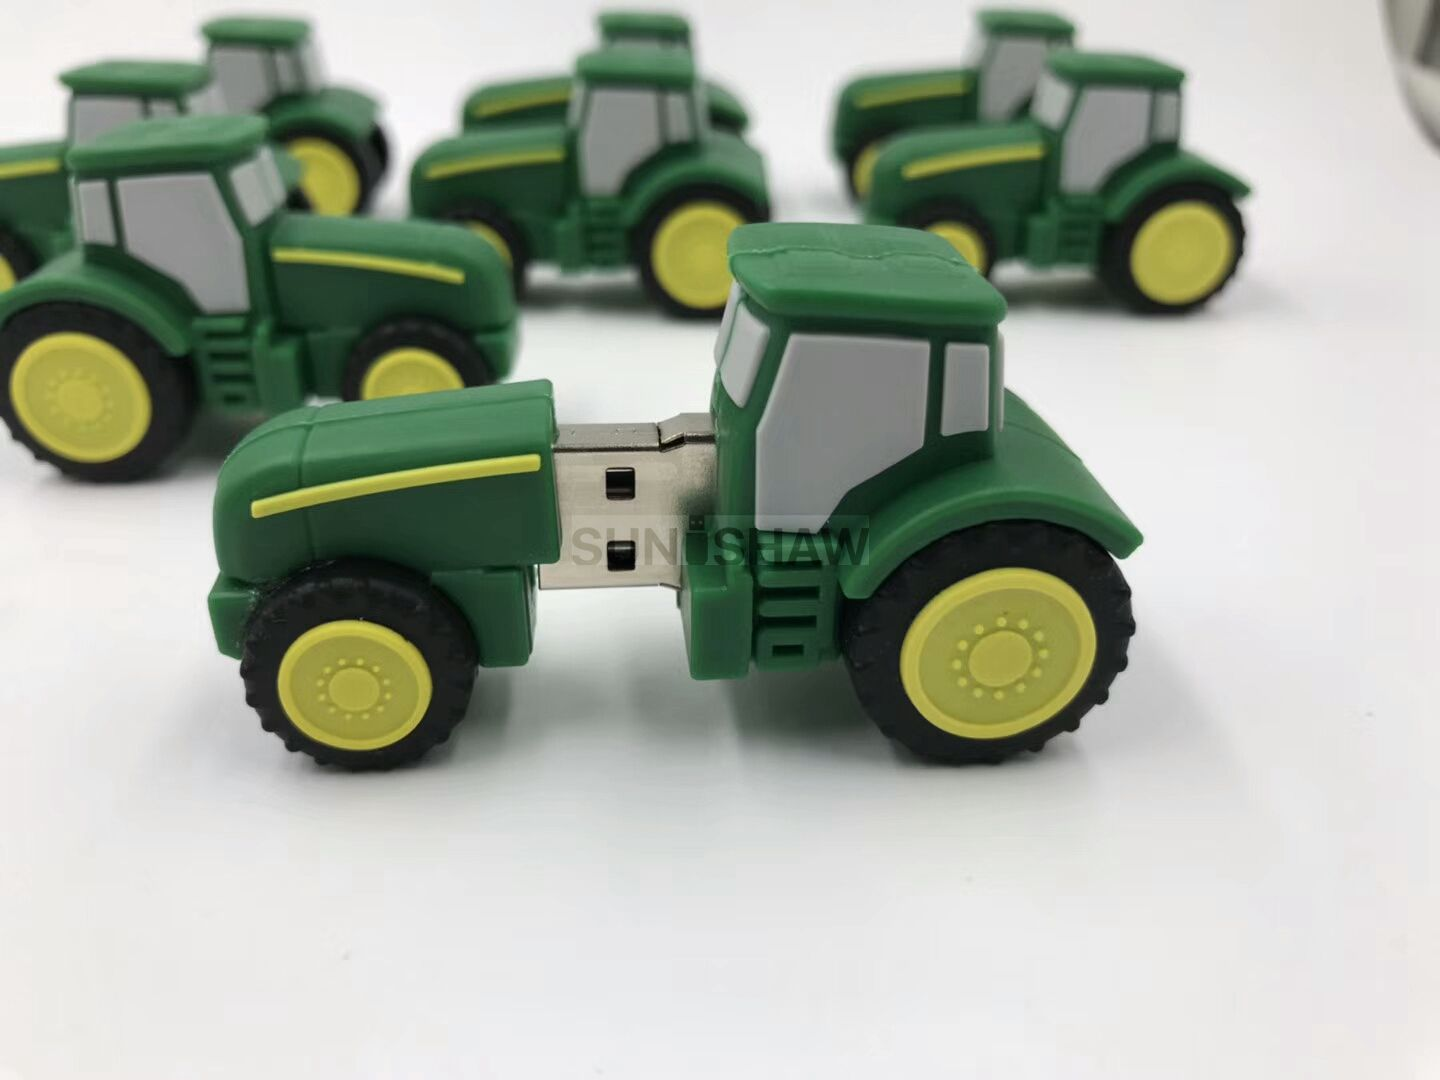 SV-004 Farm truck shaped pvc memory stick from Chinese factory